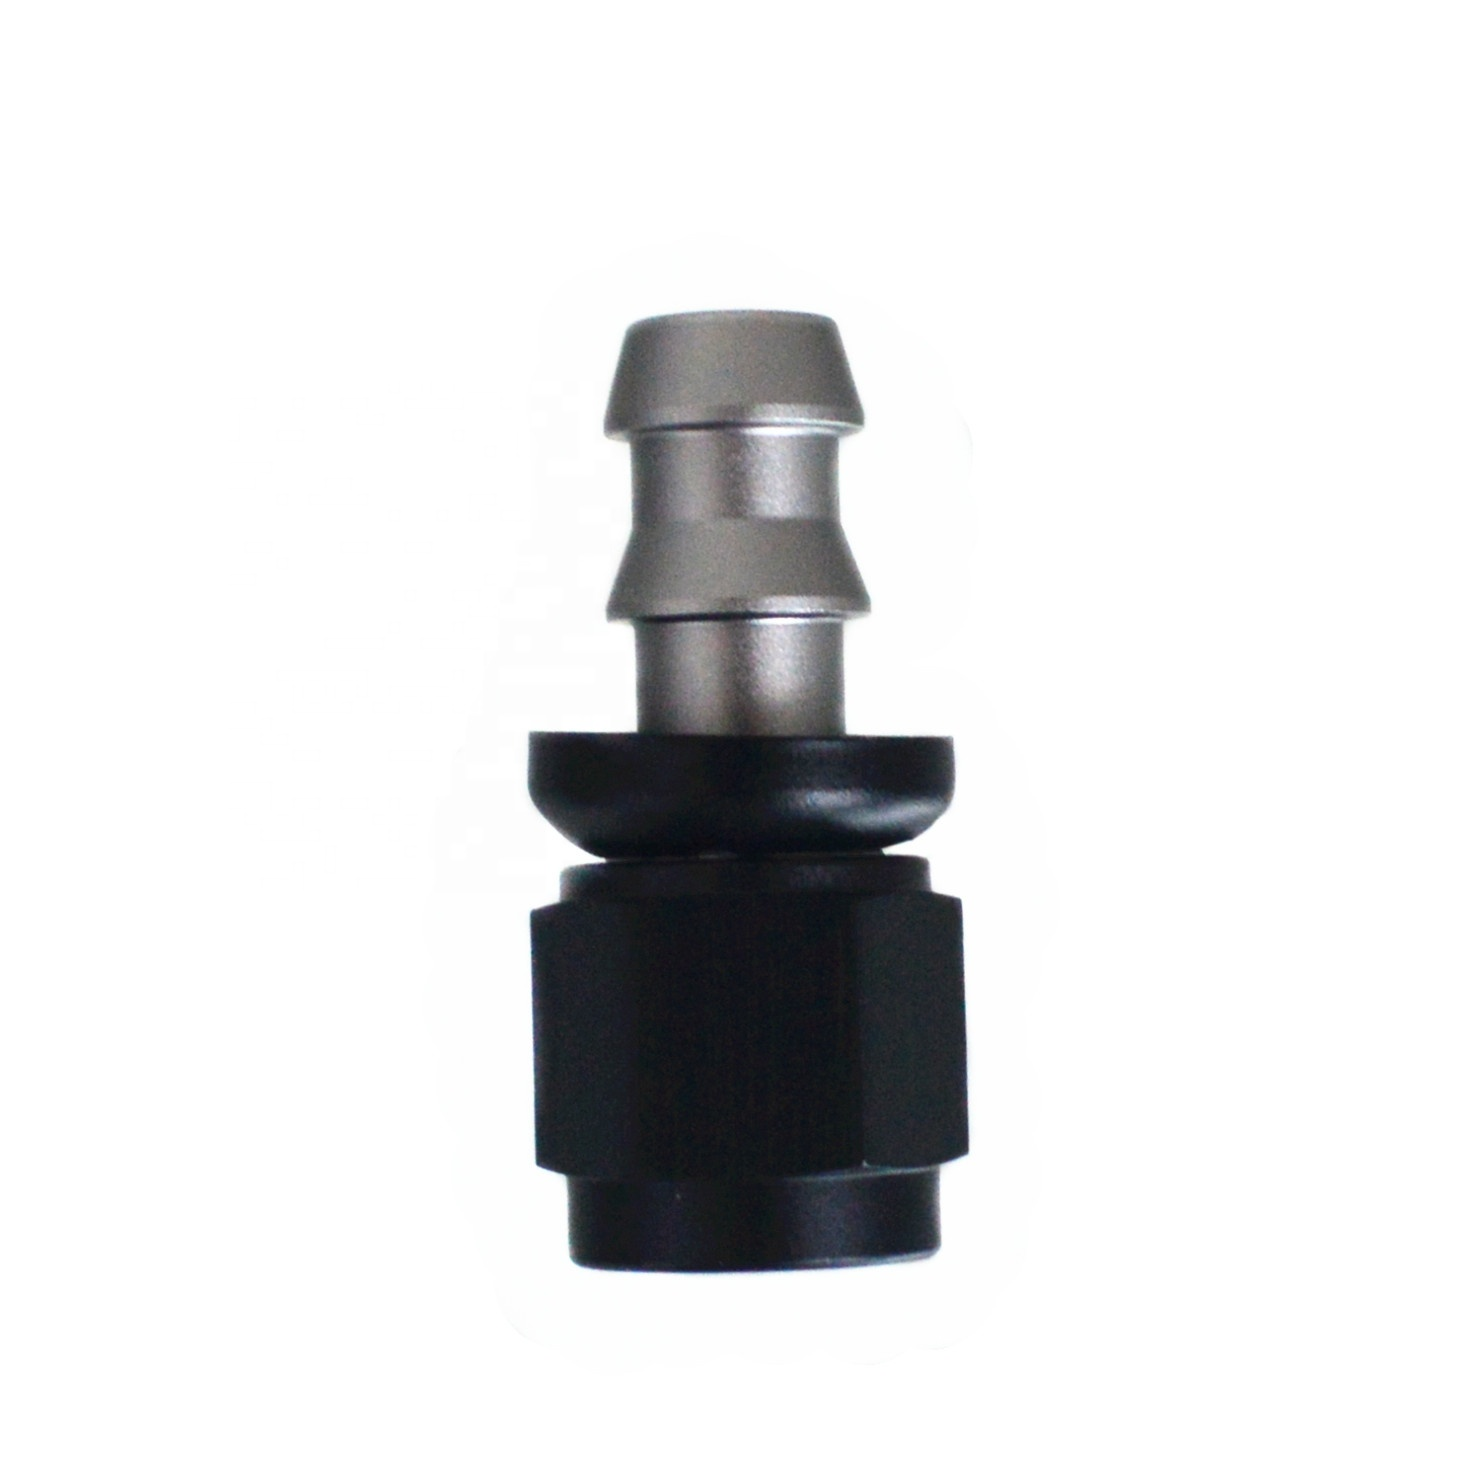 Anodized Aluminum AN Push Lock Fitting disconnect swivel Hose Barb fitting for Braided Fuel Hose Line